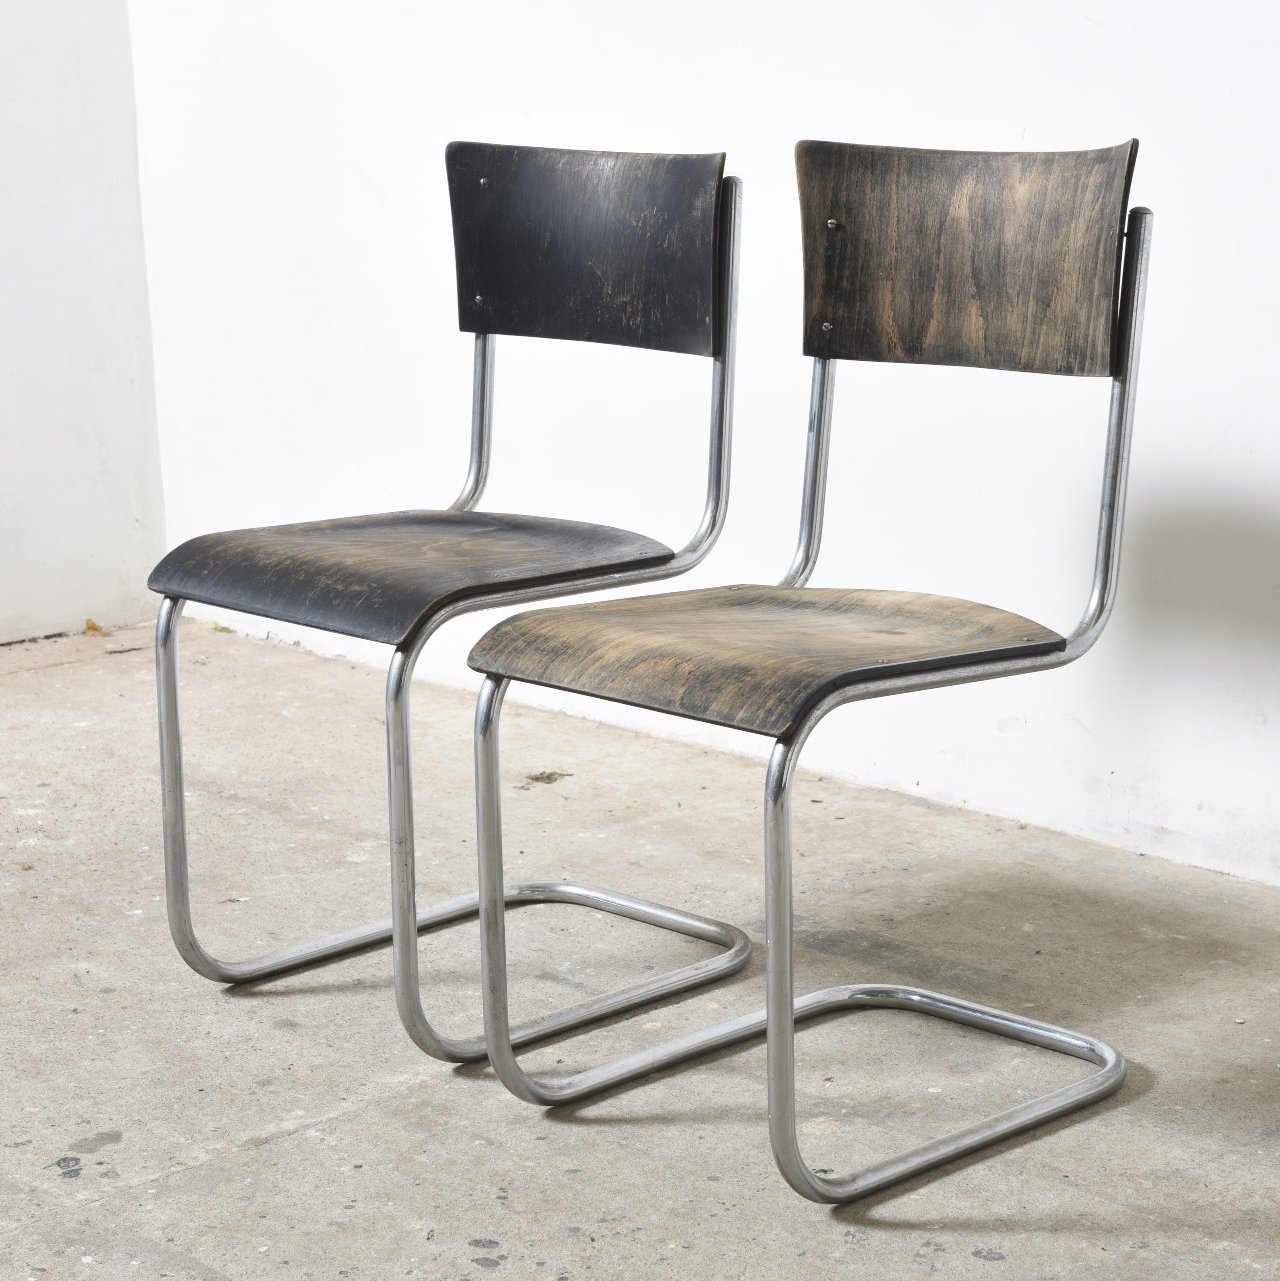 Pair Of Bauhaus S43 Cantilever Tubular Chairs By Mart Stam